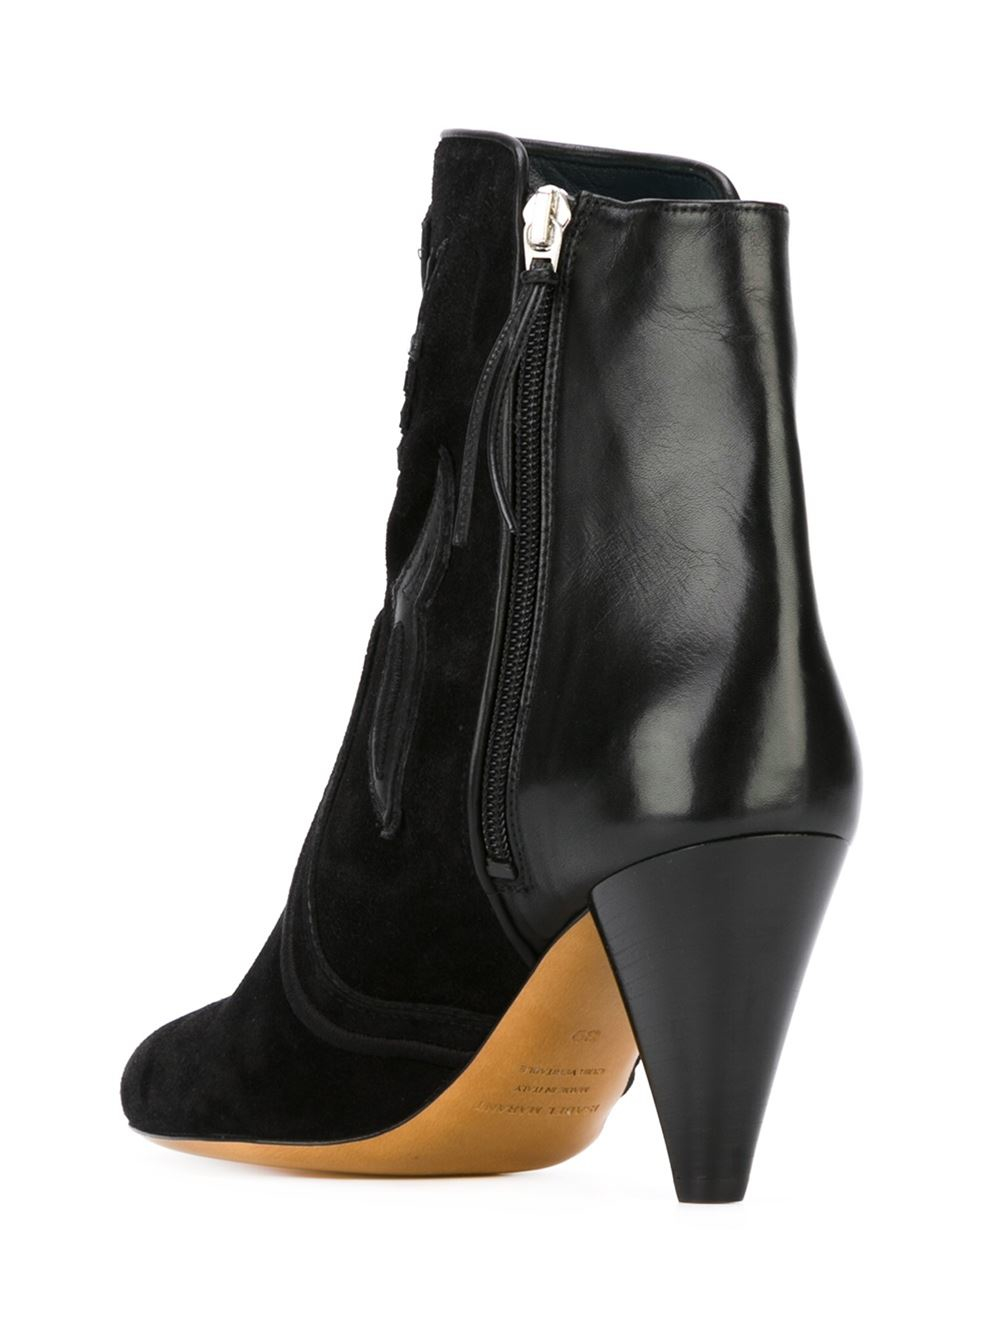 isabel marant lola farrah leather and suede boots in black lyst. Black Bedroom Furniture Sets. Home Design Ideas